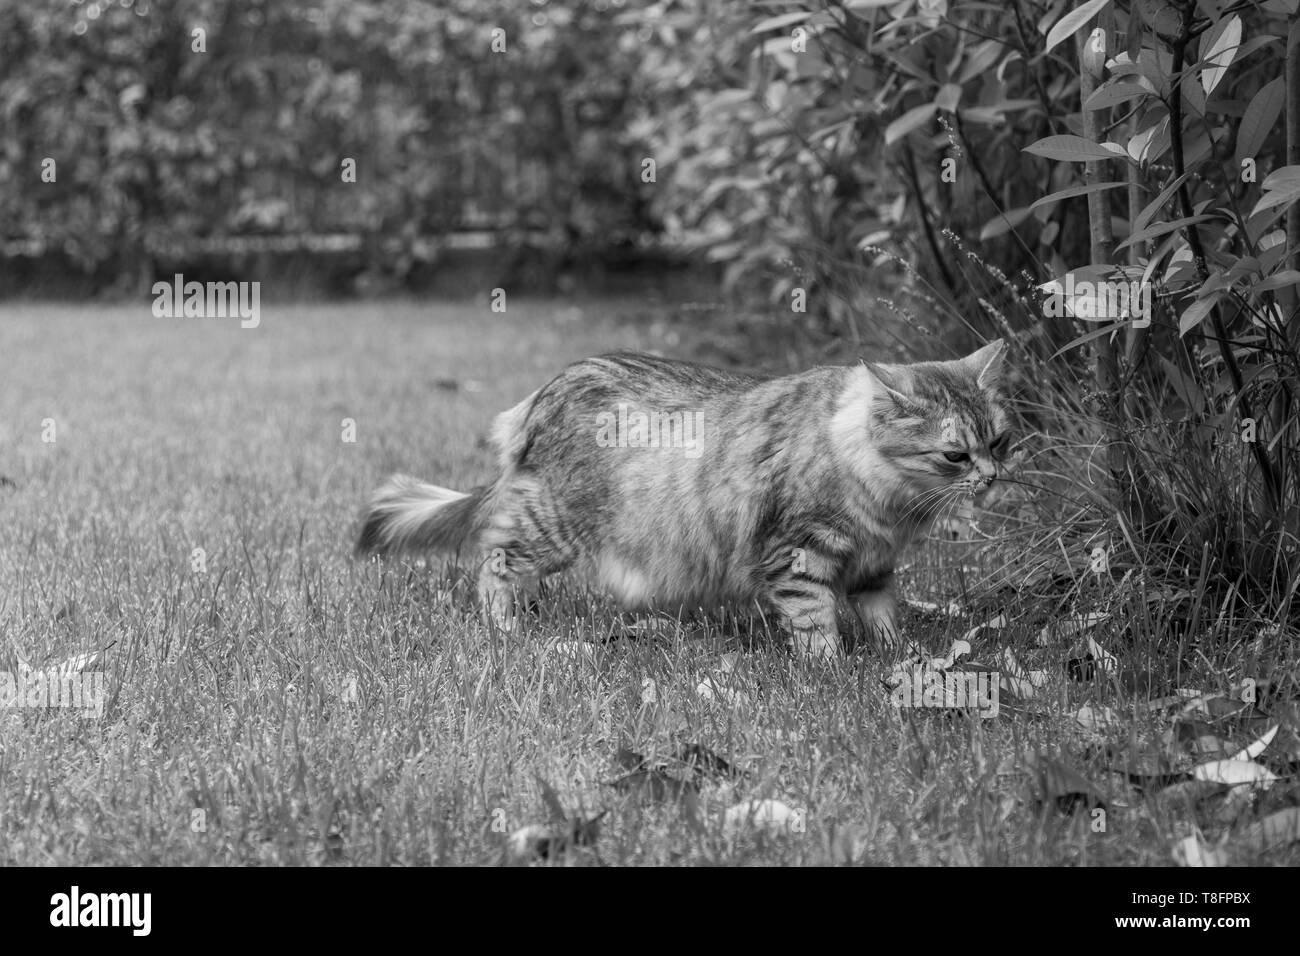 Curious cat with long hair outdoor in a garden, siberian purebred kitten - Stock Image